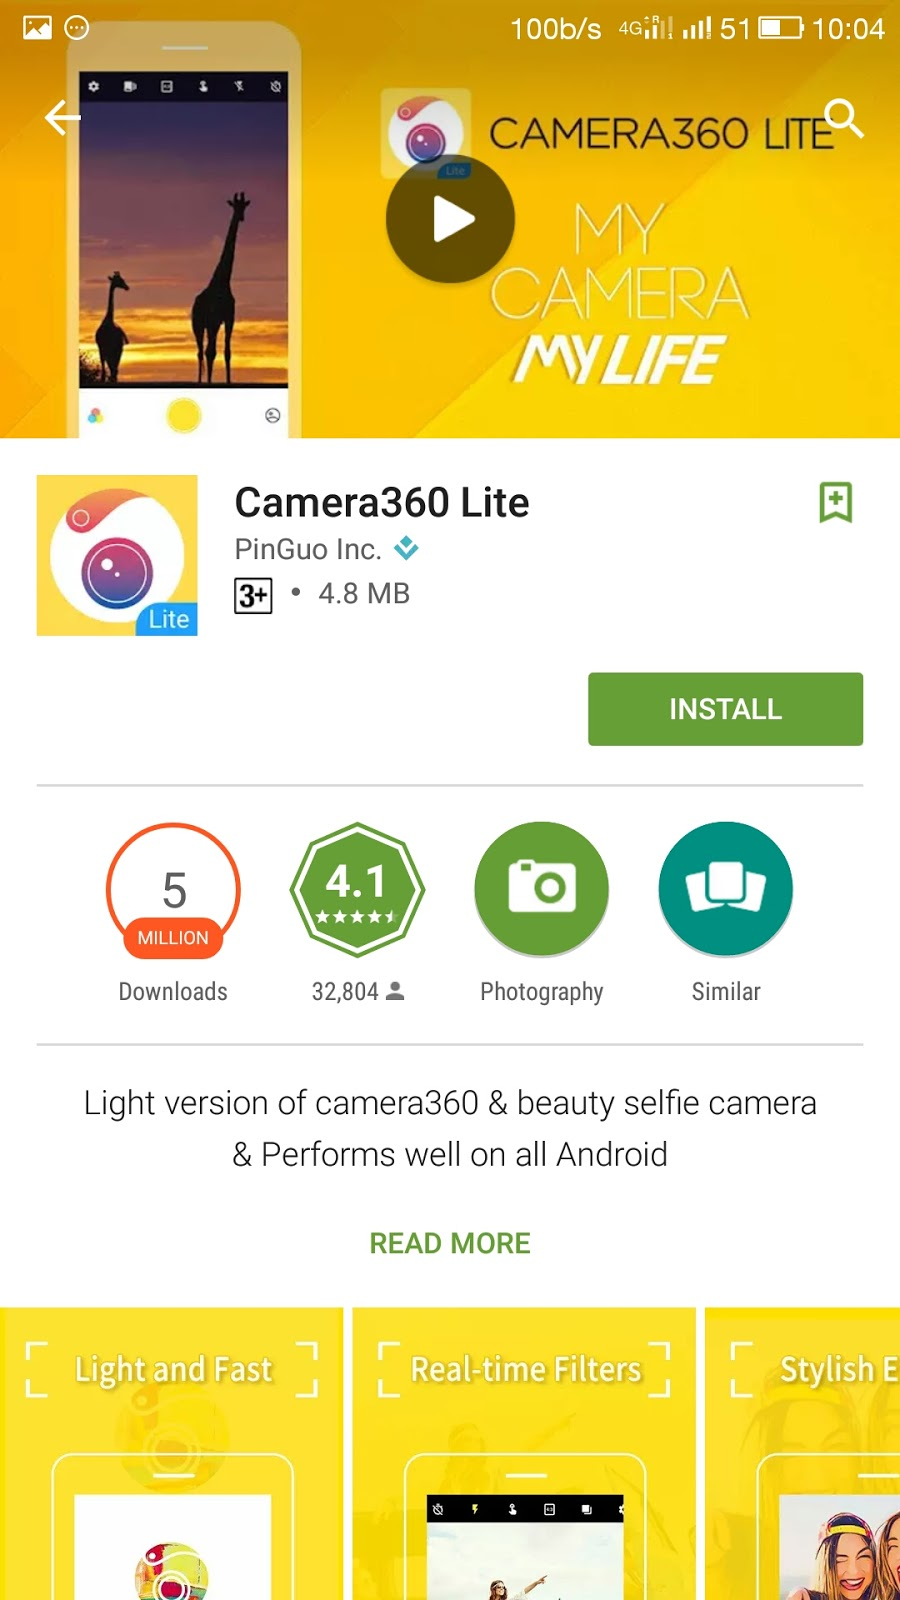 Camera 360 Lite Download From Play Store New Update Nrtrickhub